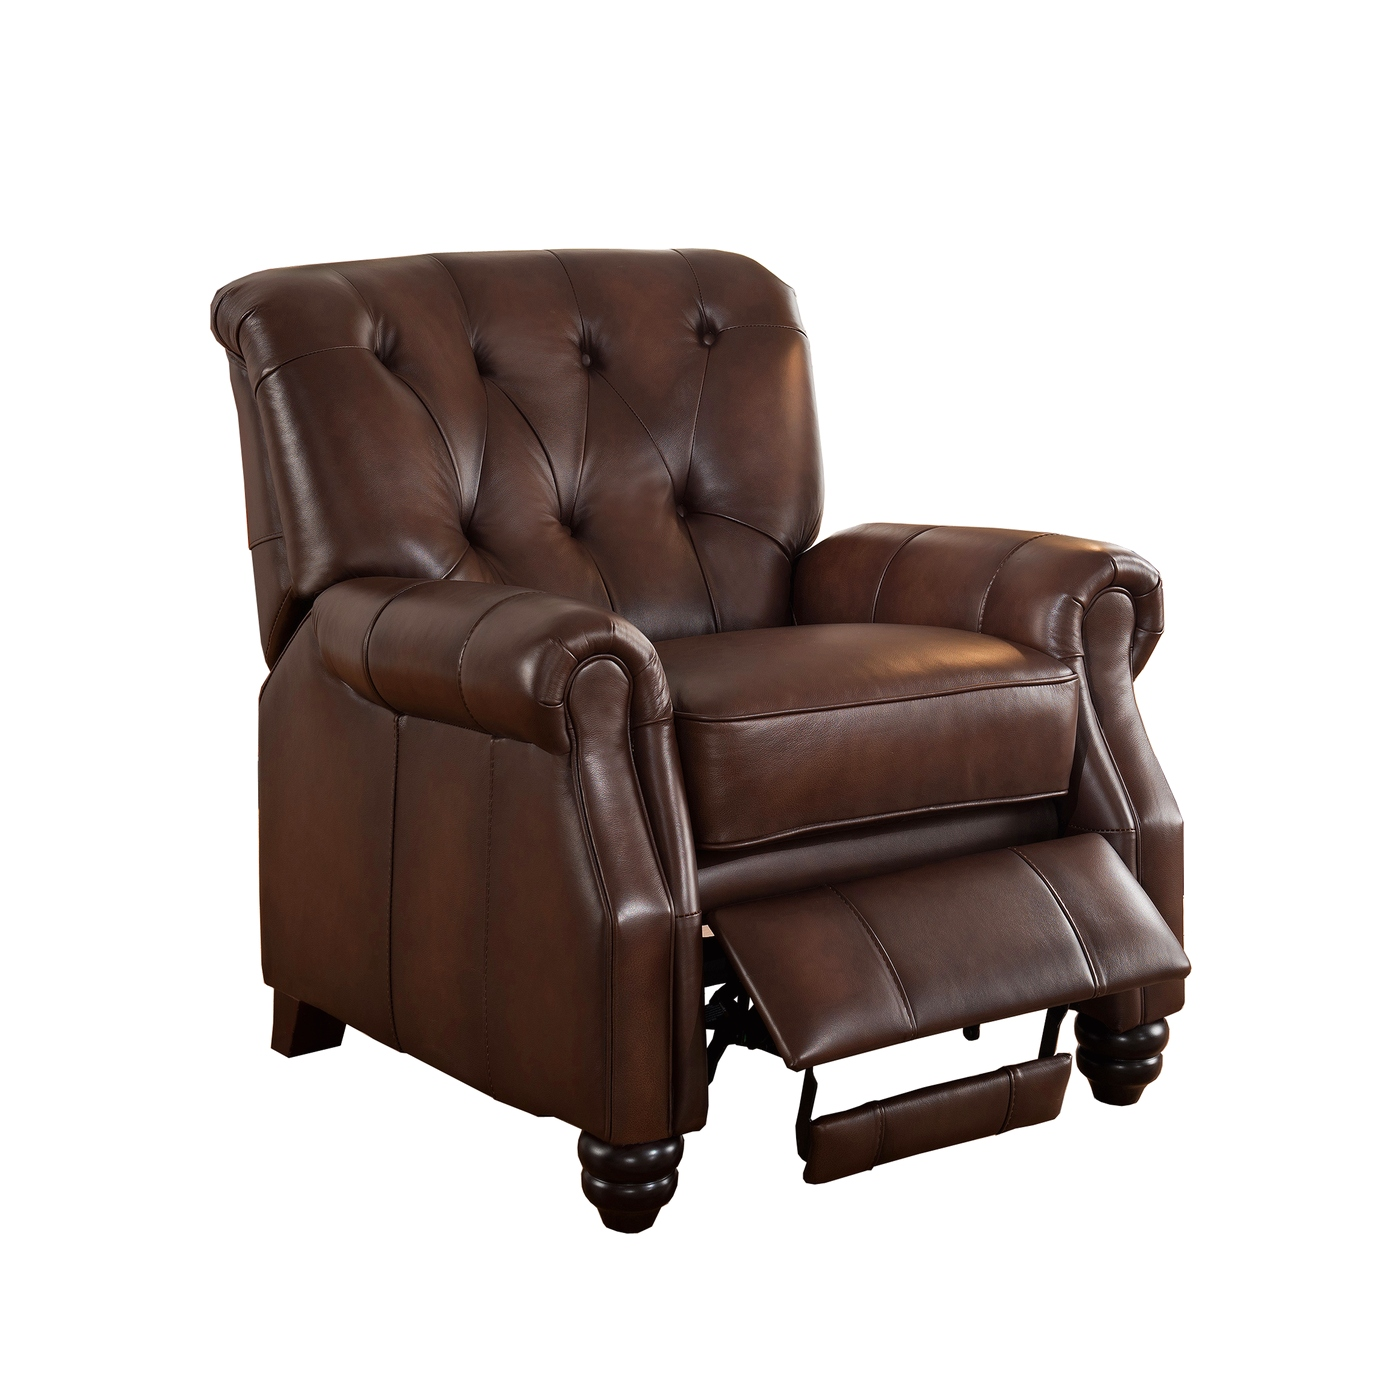 Covington Traditional Top Grain Brown Leather Pushback